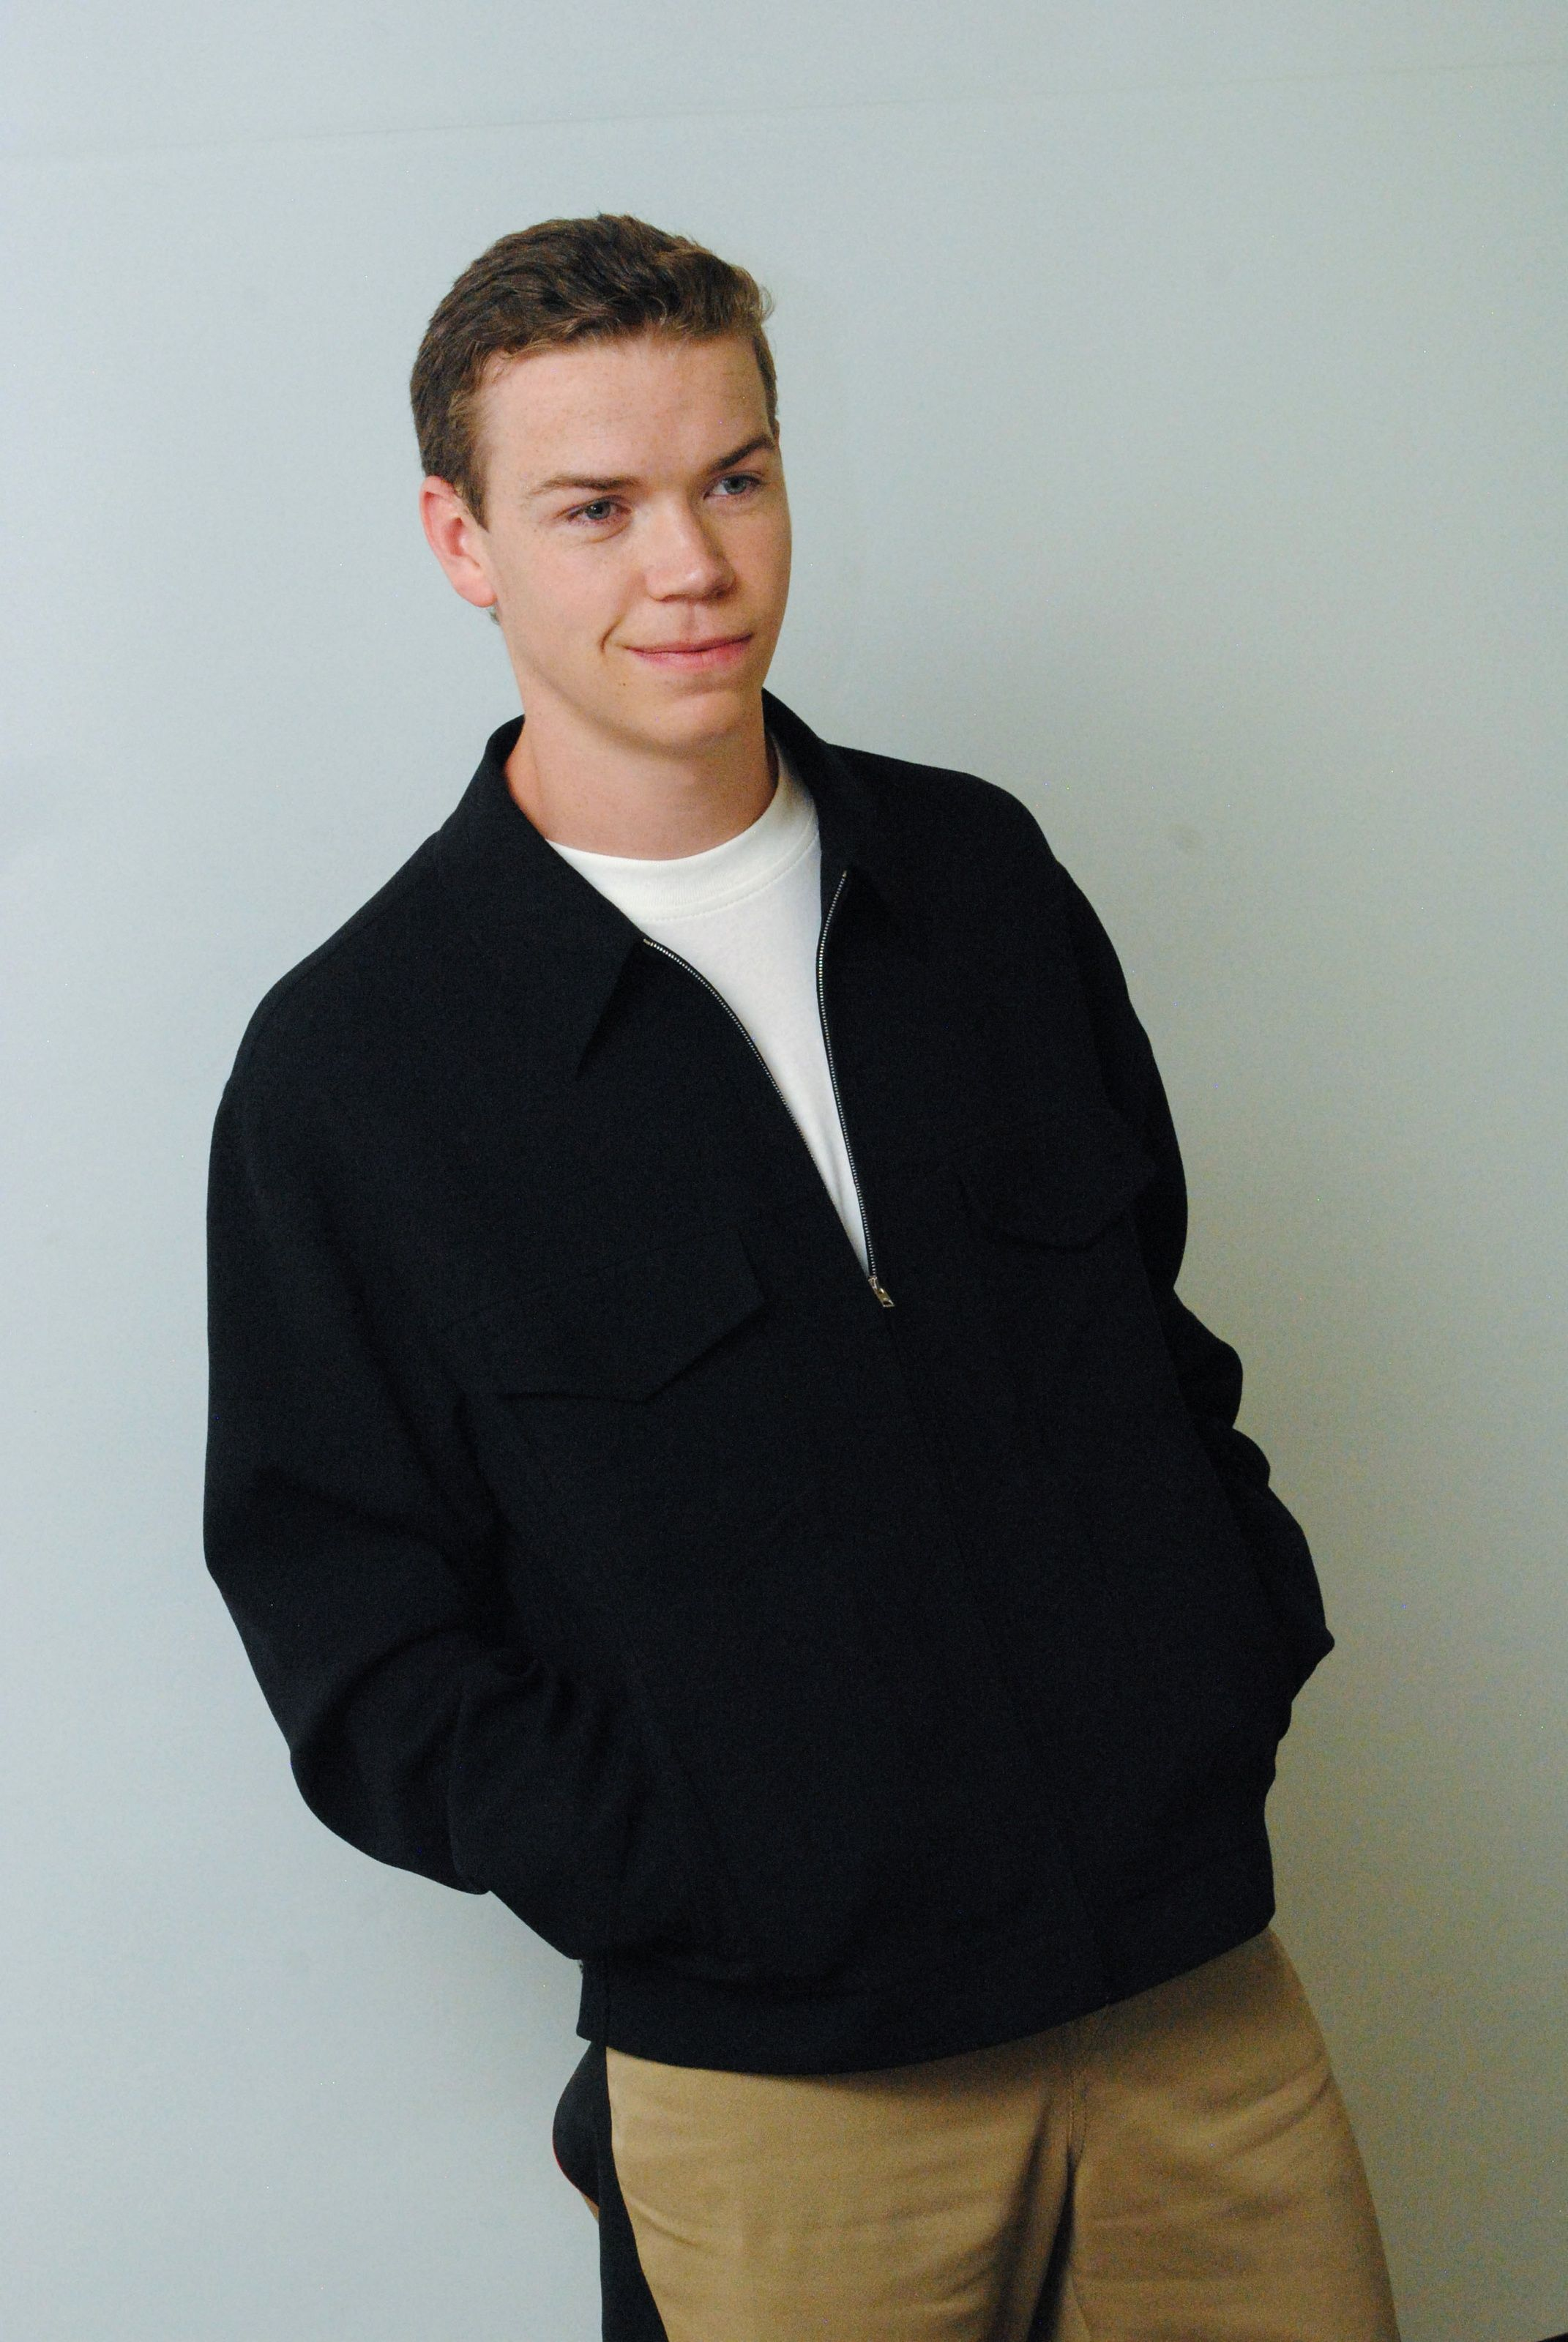 butt William Poulter (born 1993) naked photo 2017